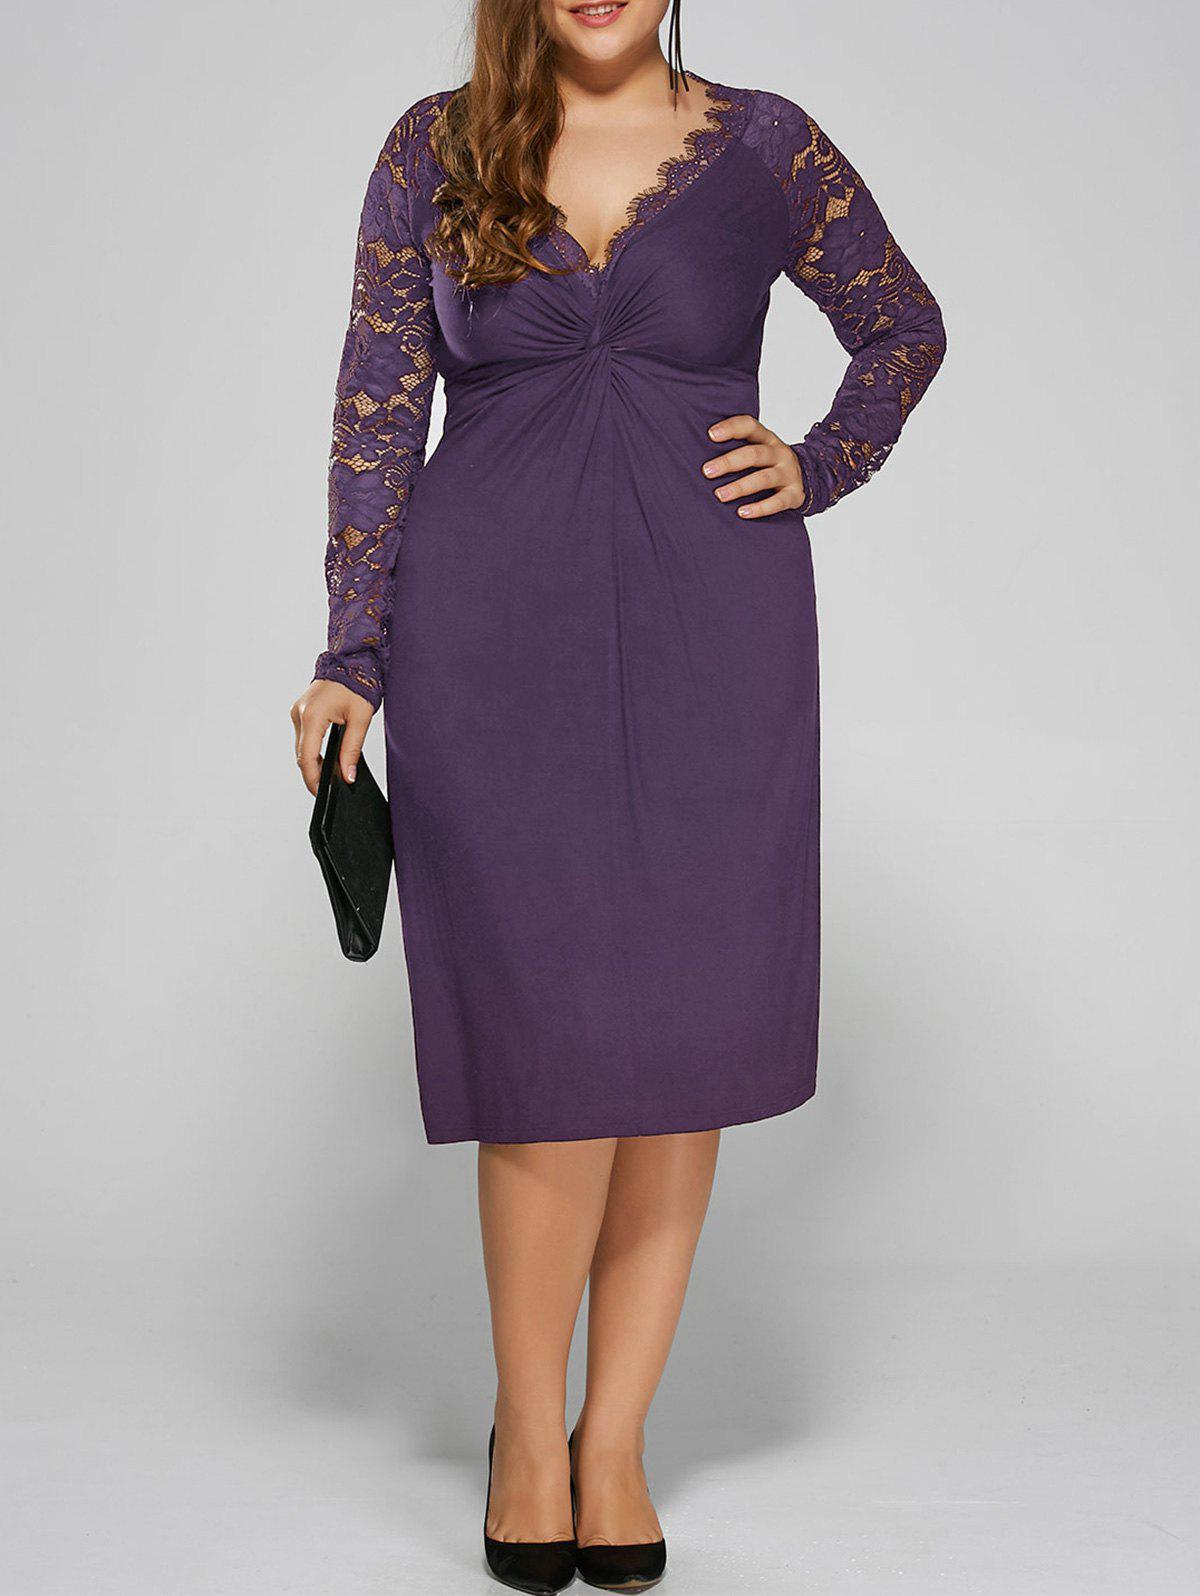 Plus Size Twist Front Lace Insert Fitted Dress - PURPLE 3XL